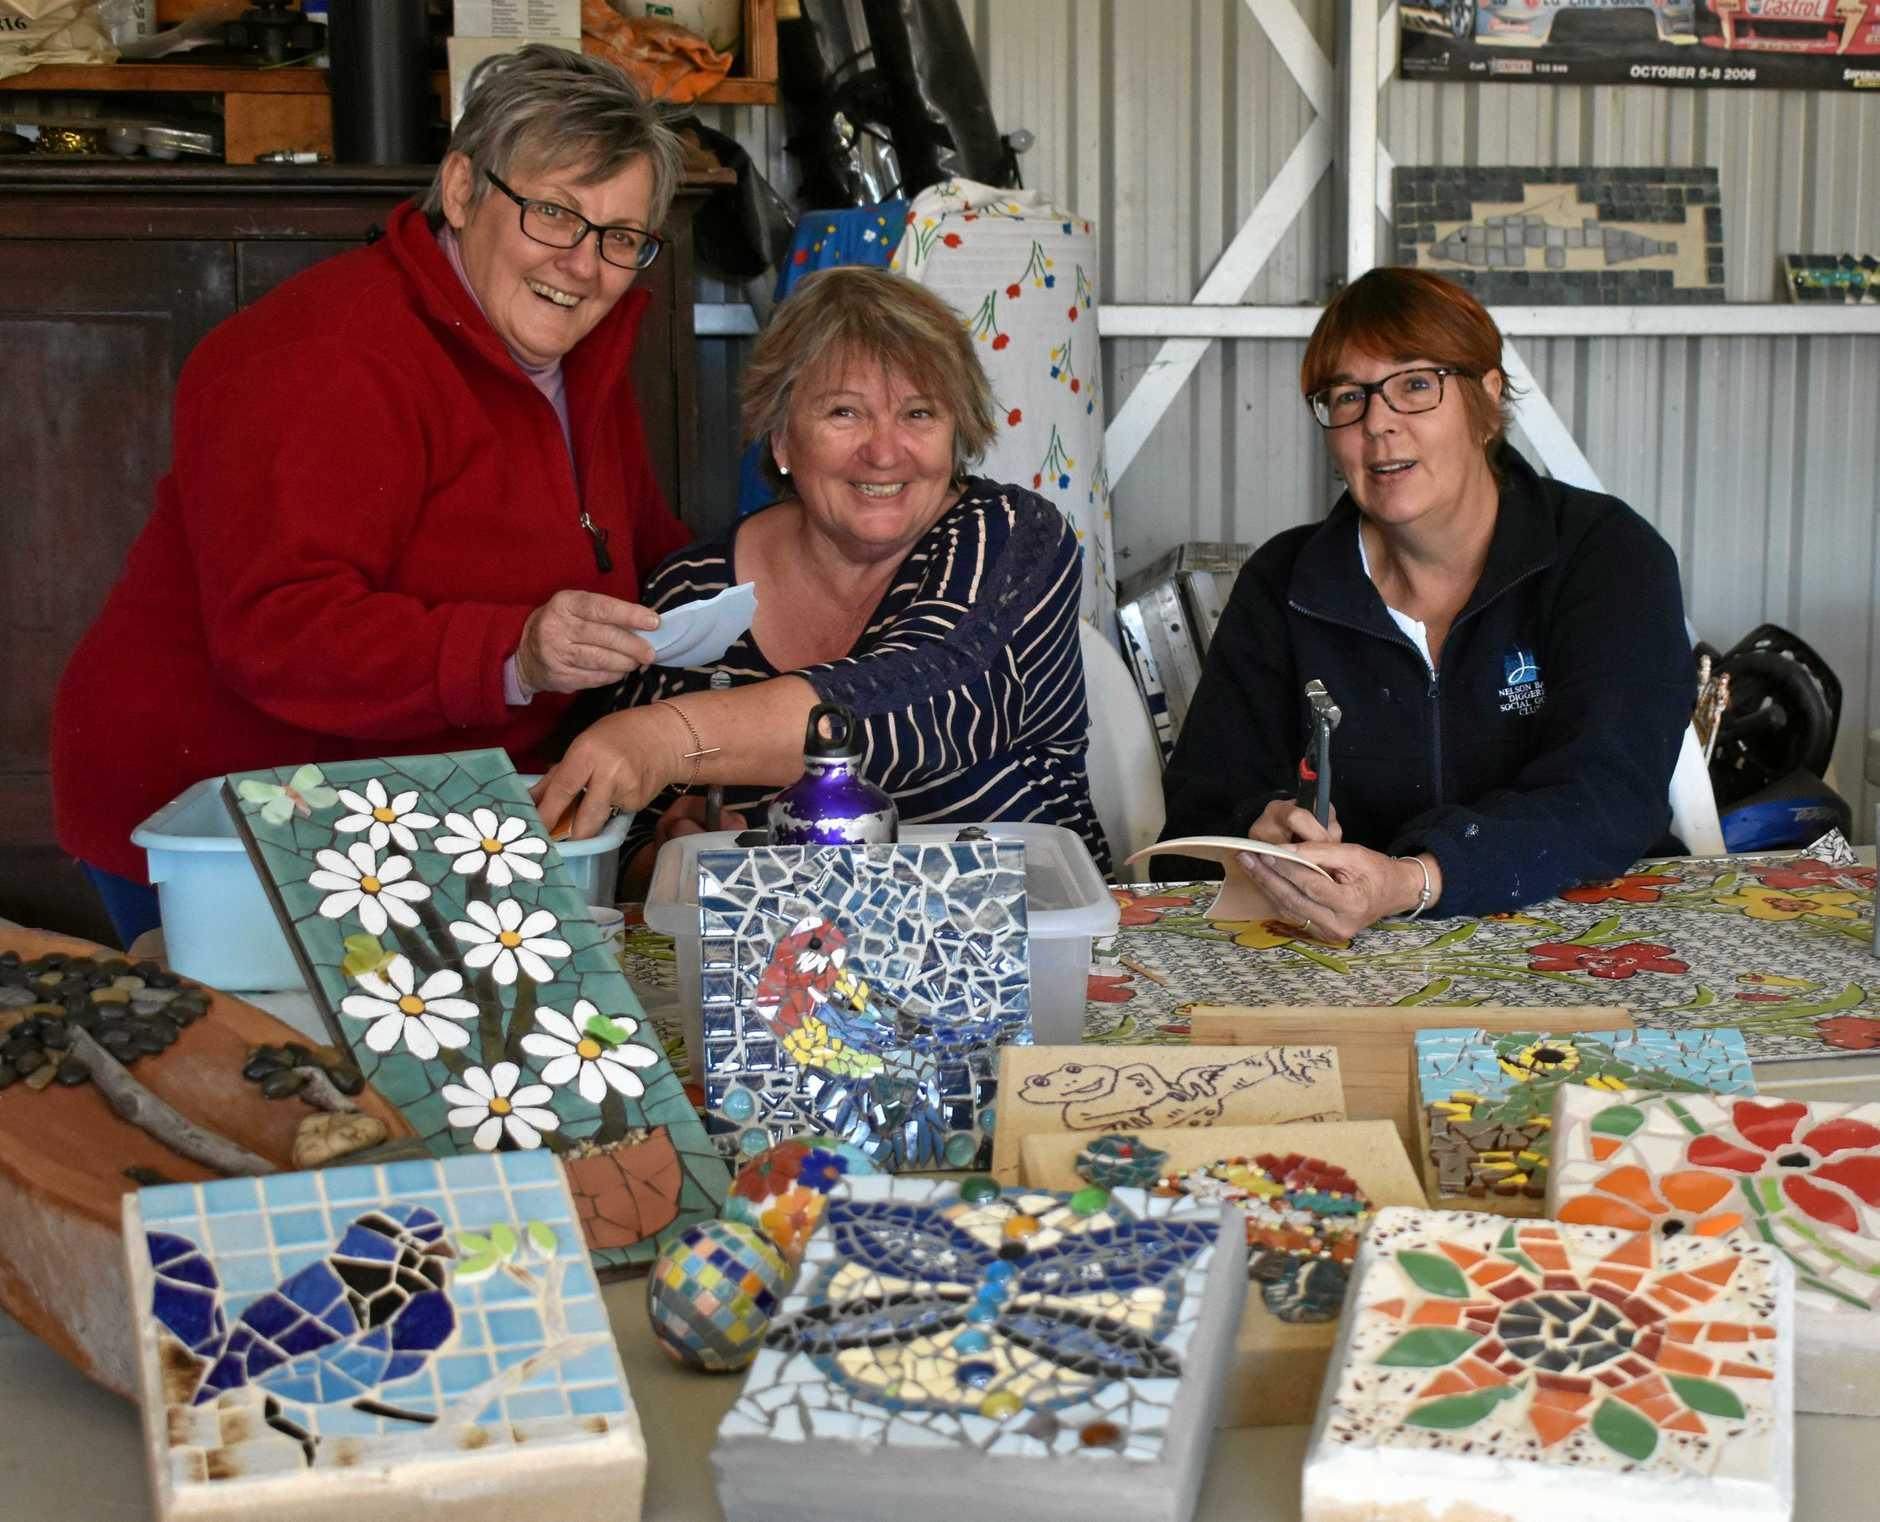 GETTING ARTY: Kathy Williams, Margy Dawson and Annette Davies of the U3A Mosaics group.